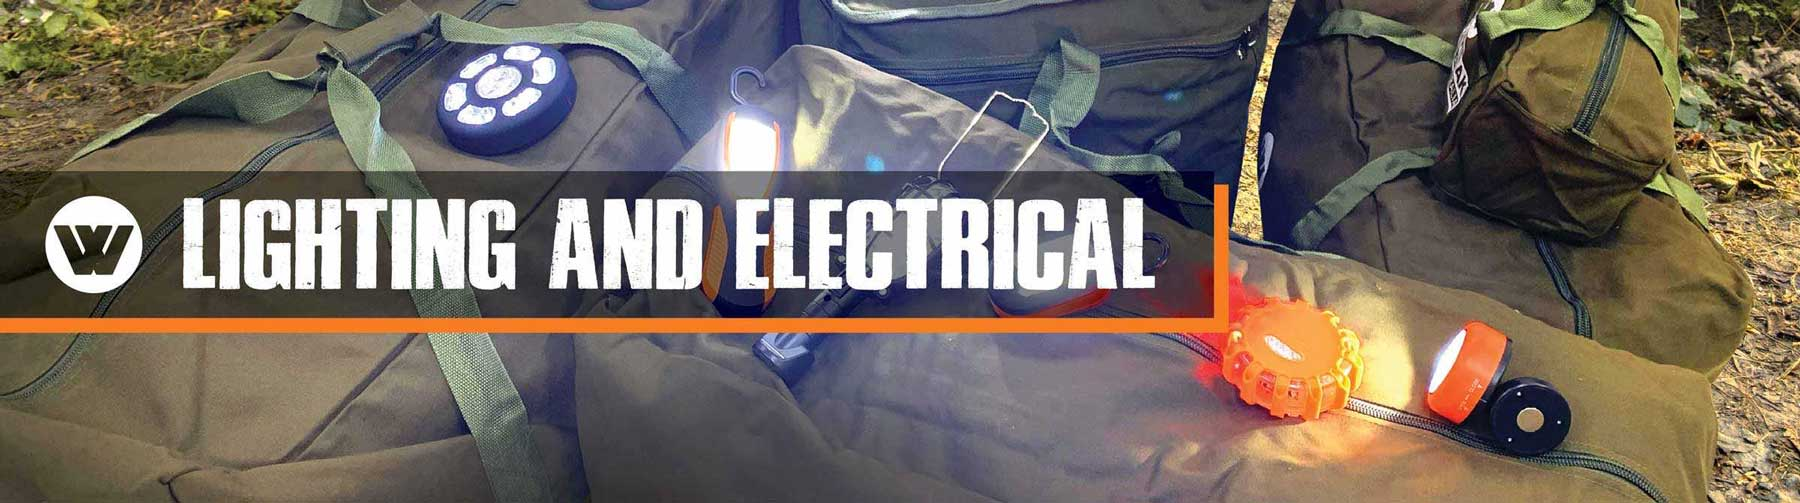 Lighting And Electrical